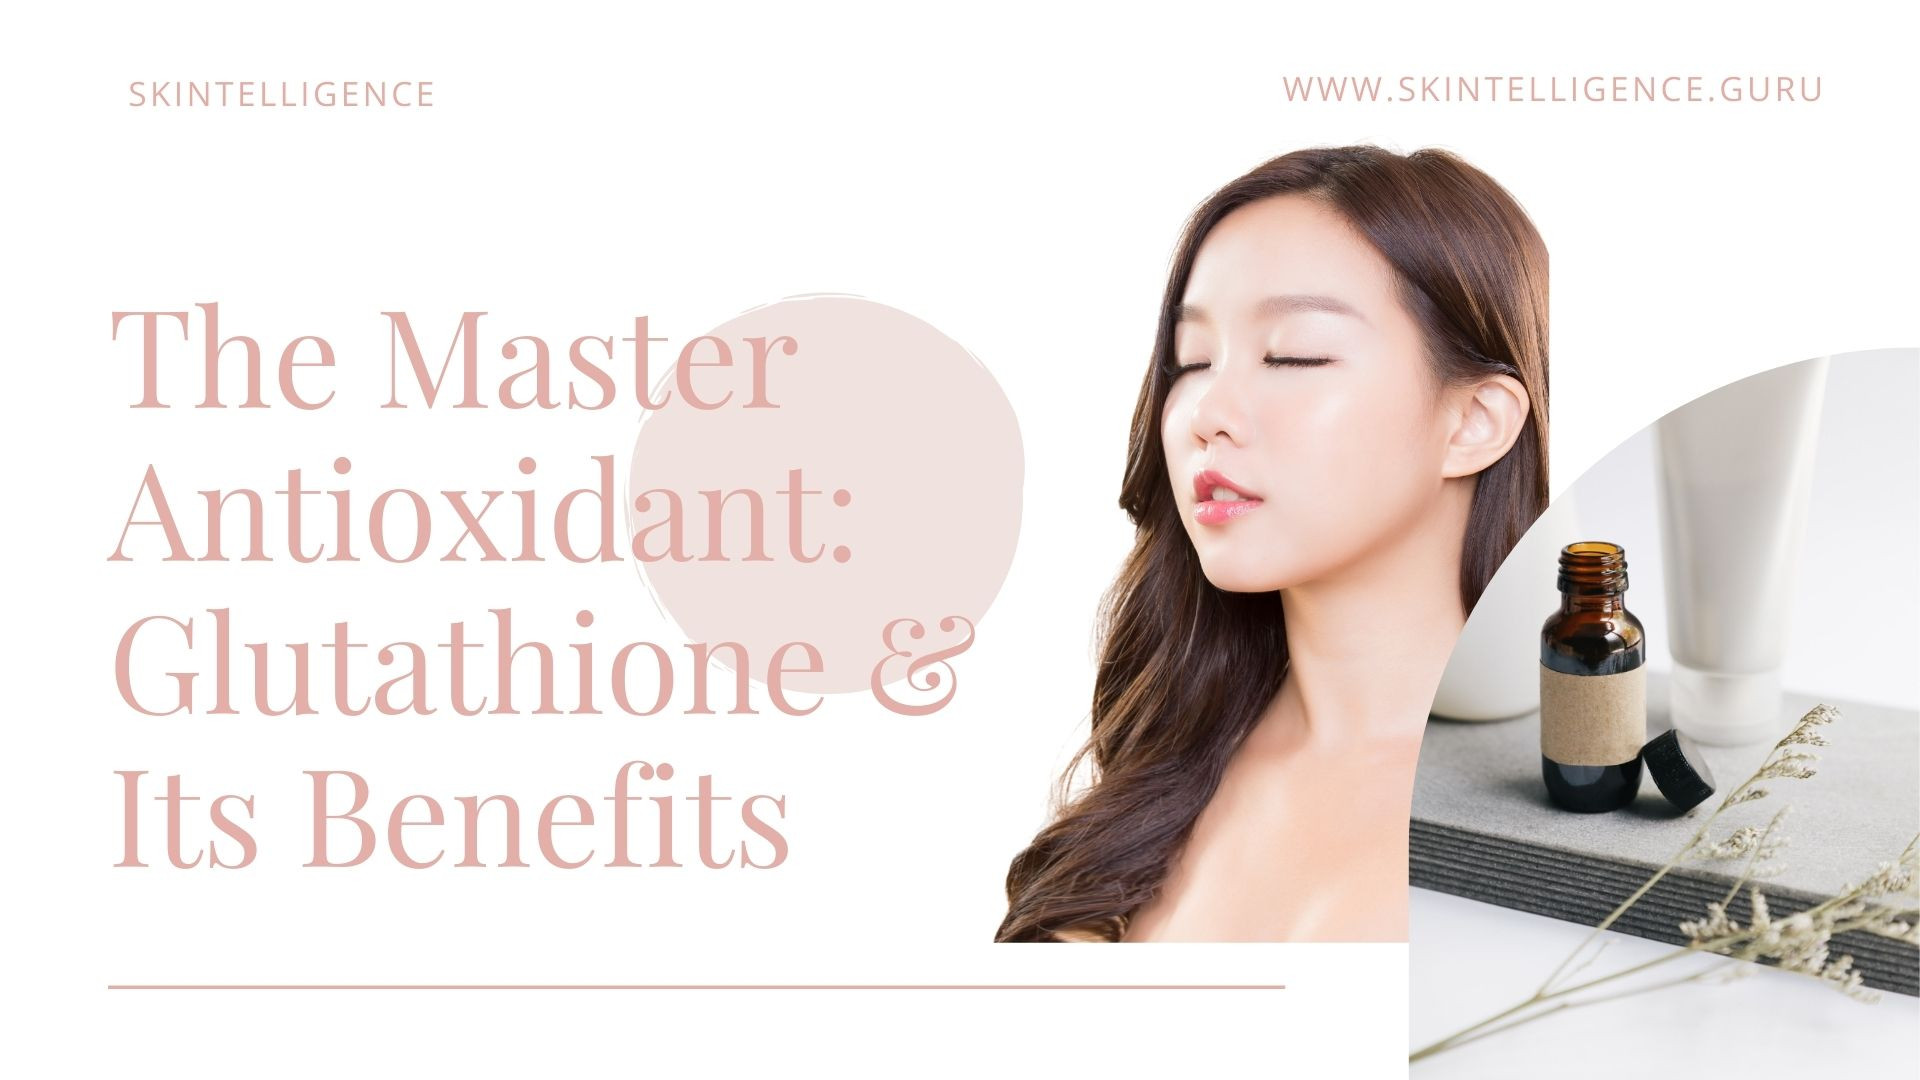 The Master Antioxidant: Glutathione & It's Benefits